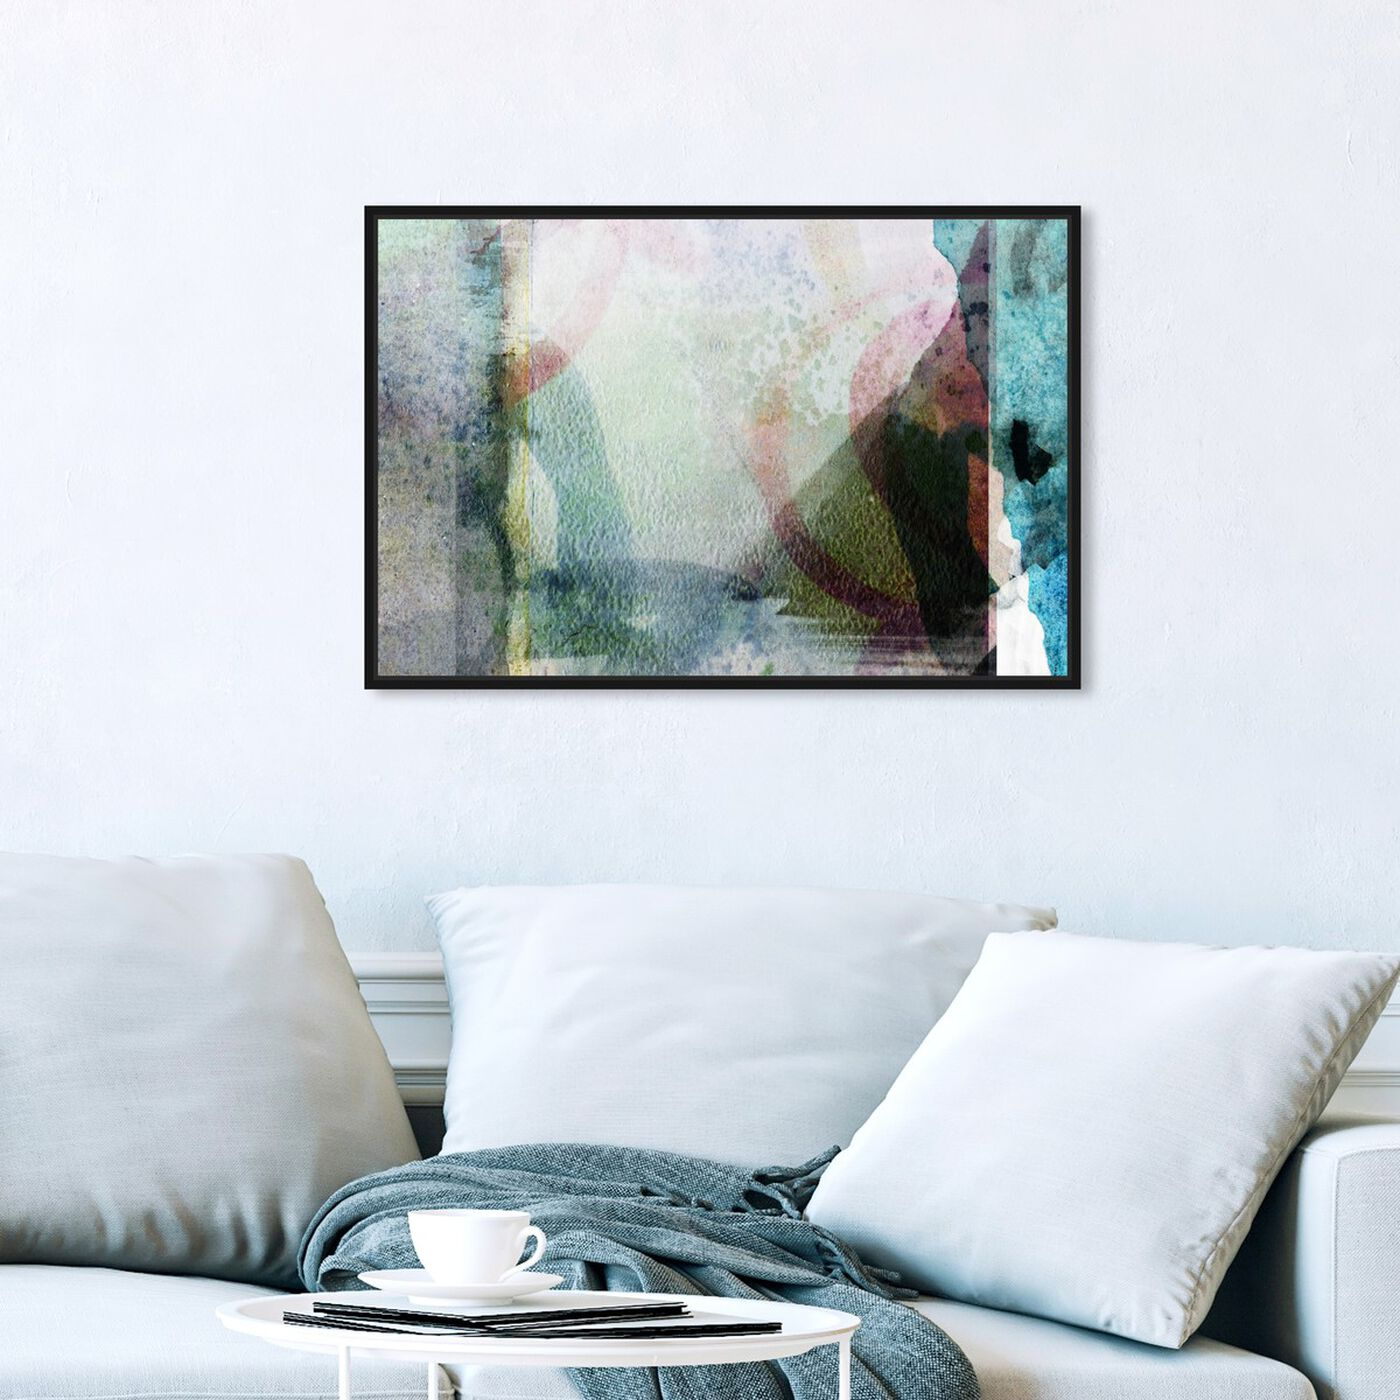 Hanging view of Con Dao Island featuring abstract and paint art.